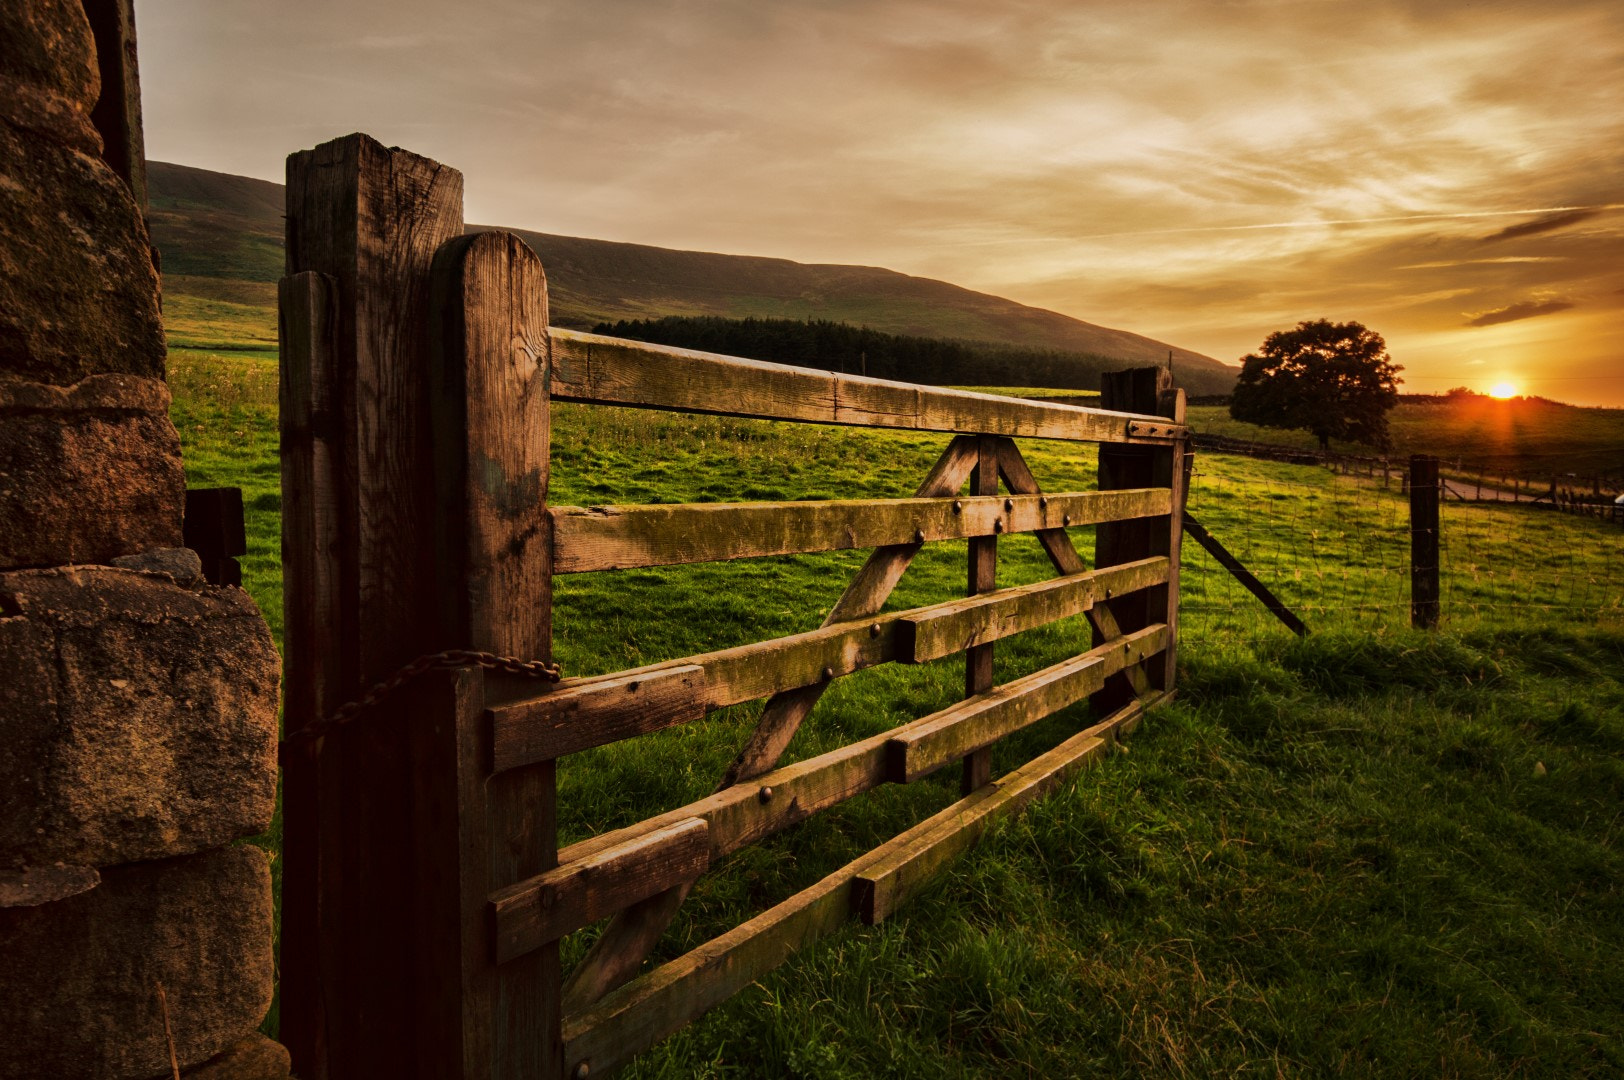 Photograph Up in the Hills by Darren Chadwick on 500px